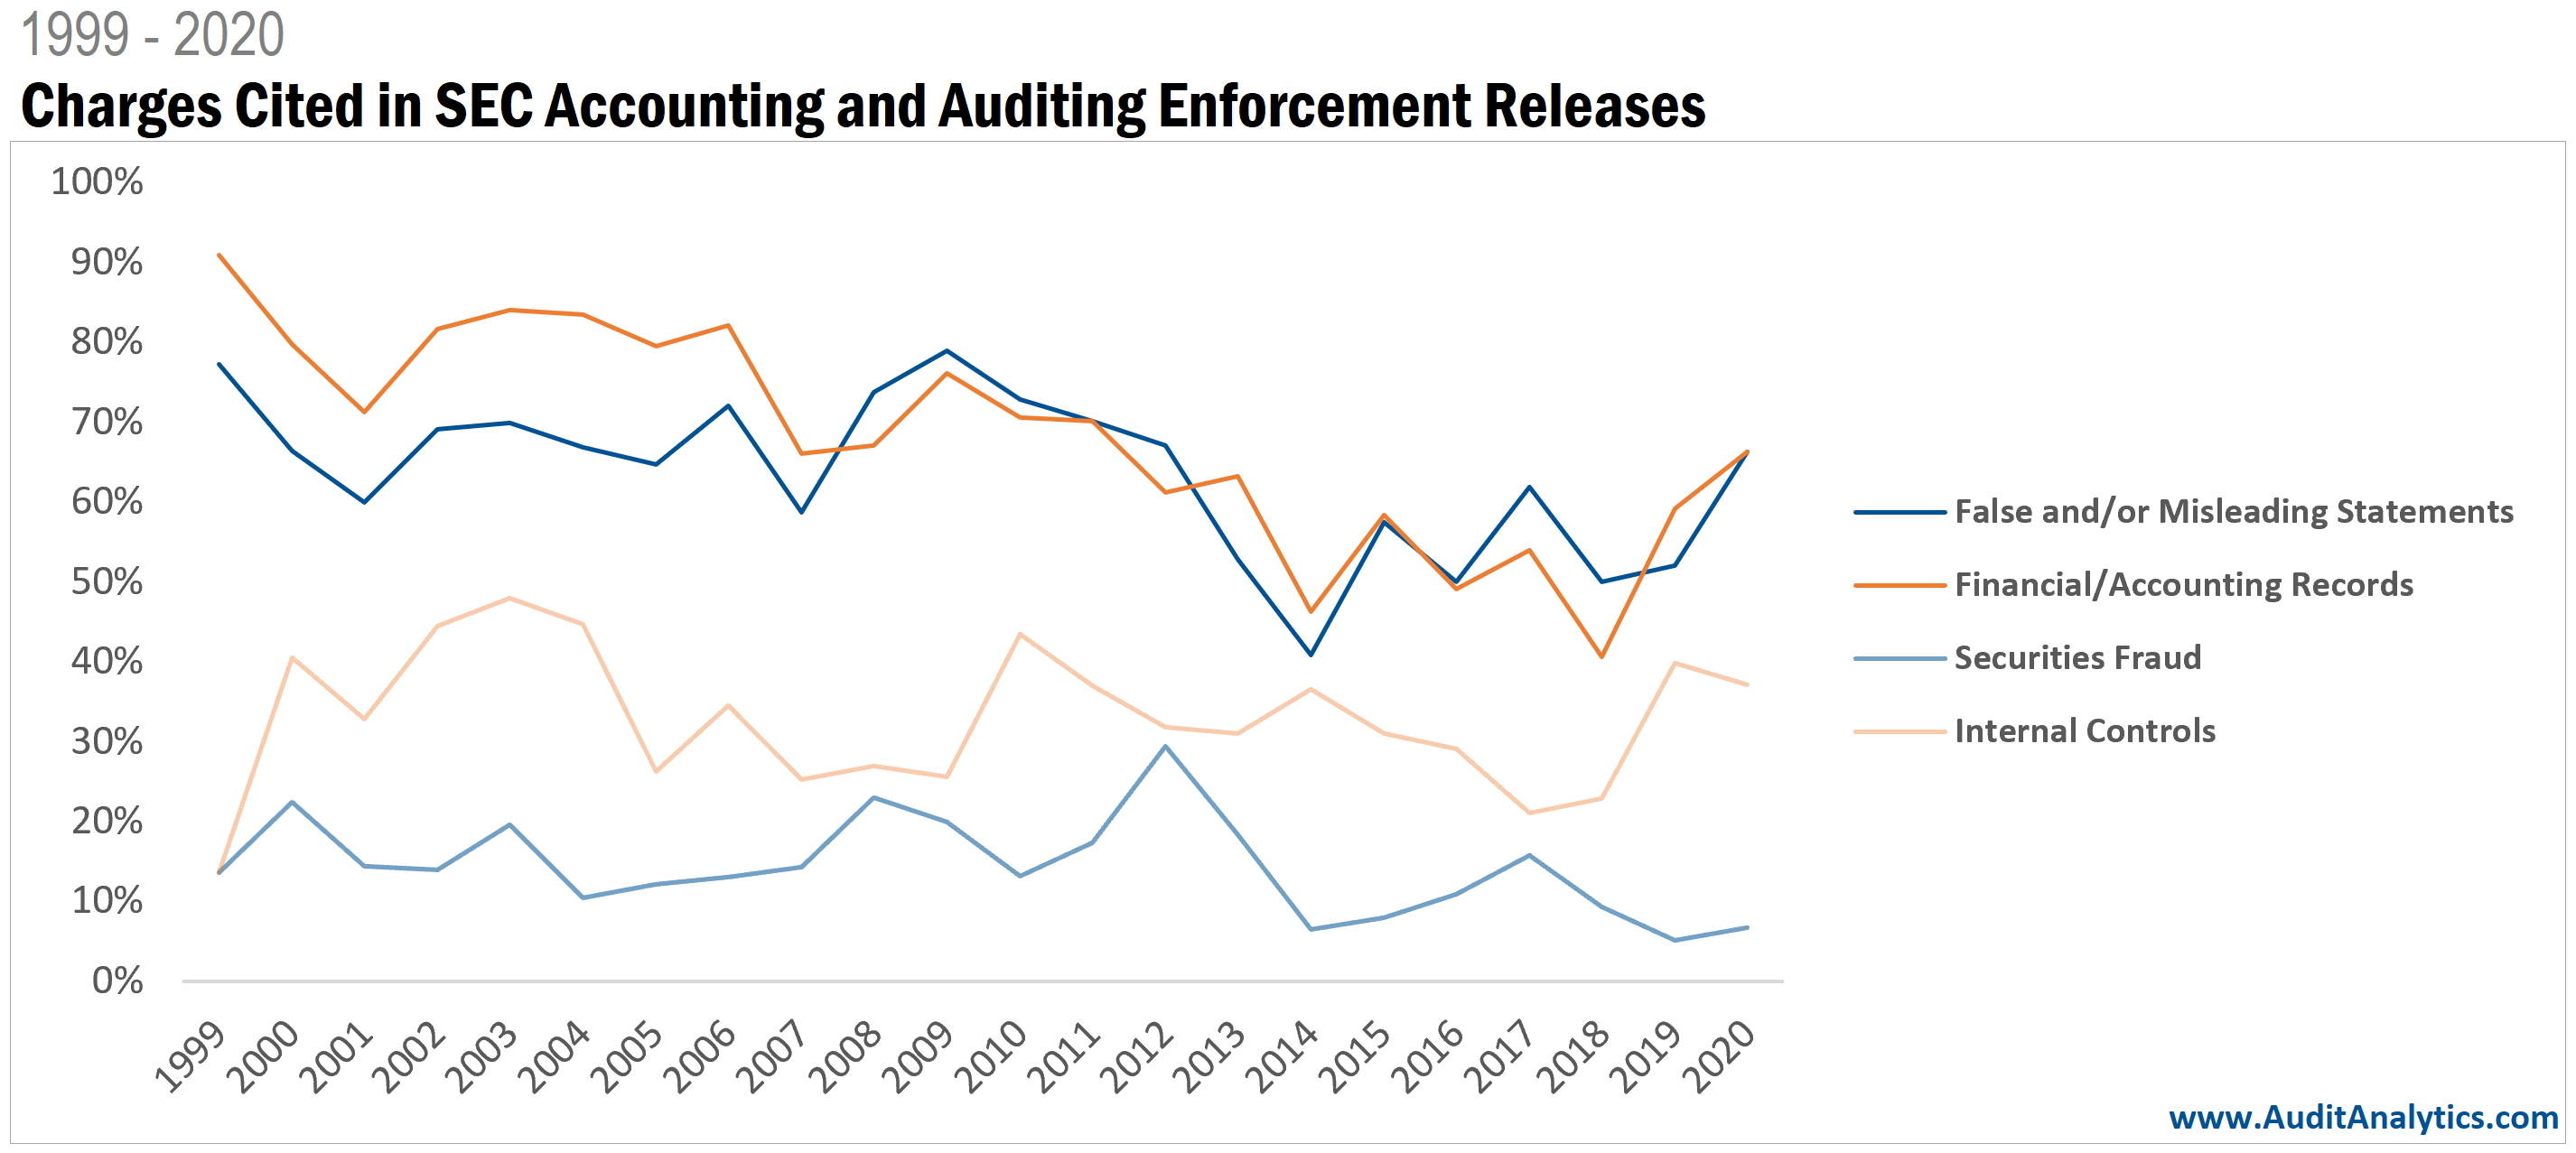 SEC Accounting and Auditing Enforcement Releases: Trends in charges over time